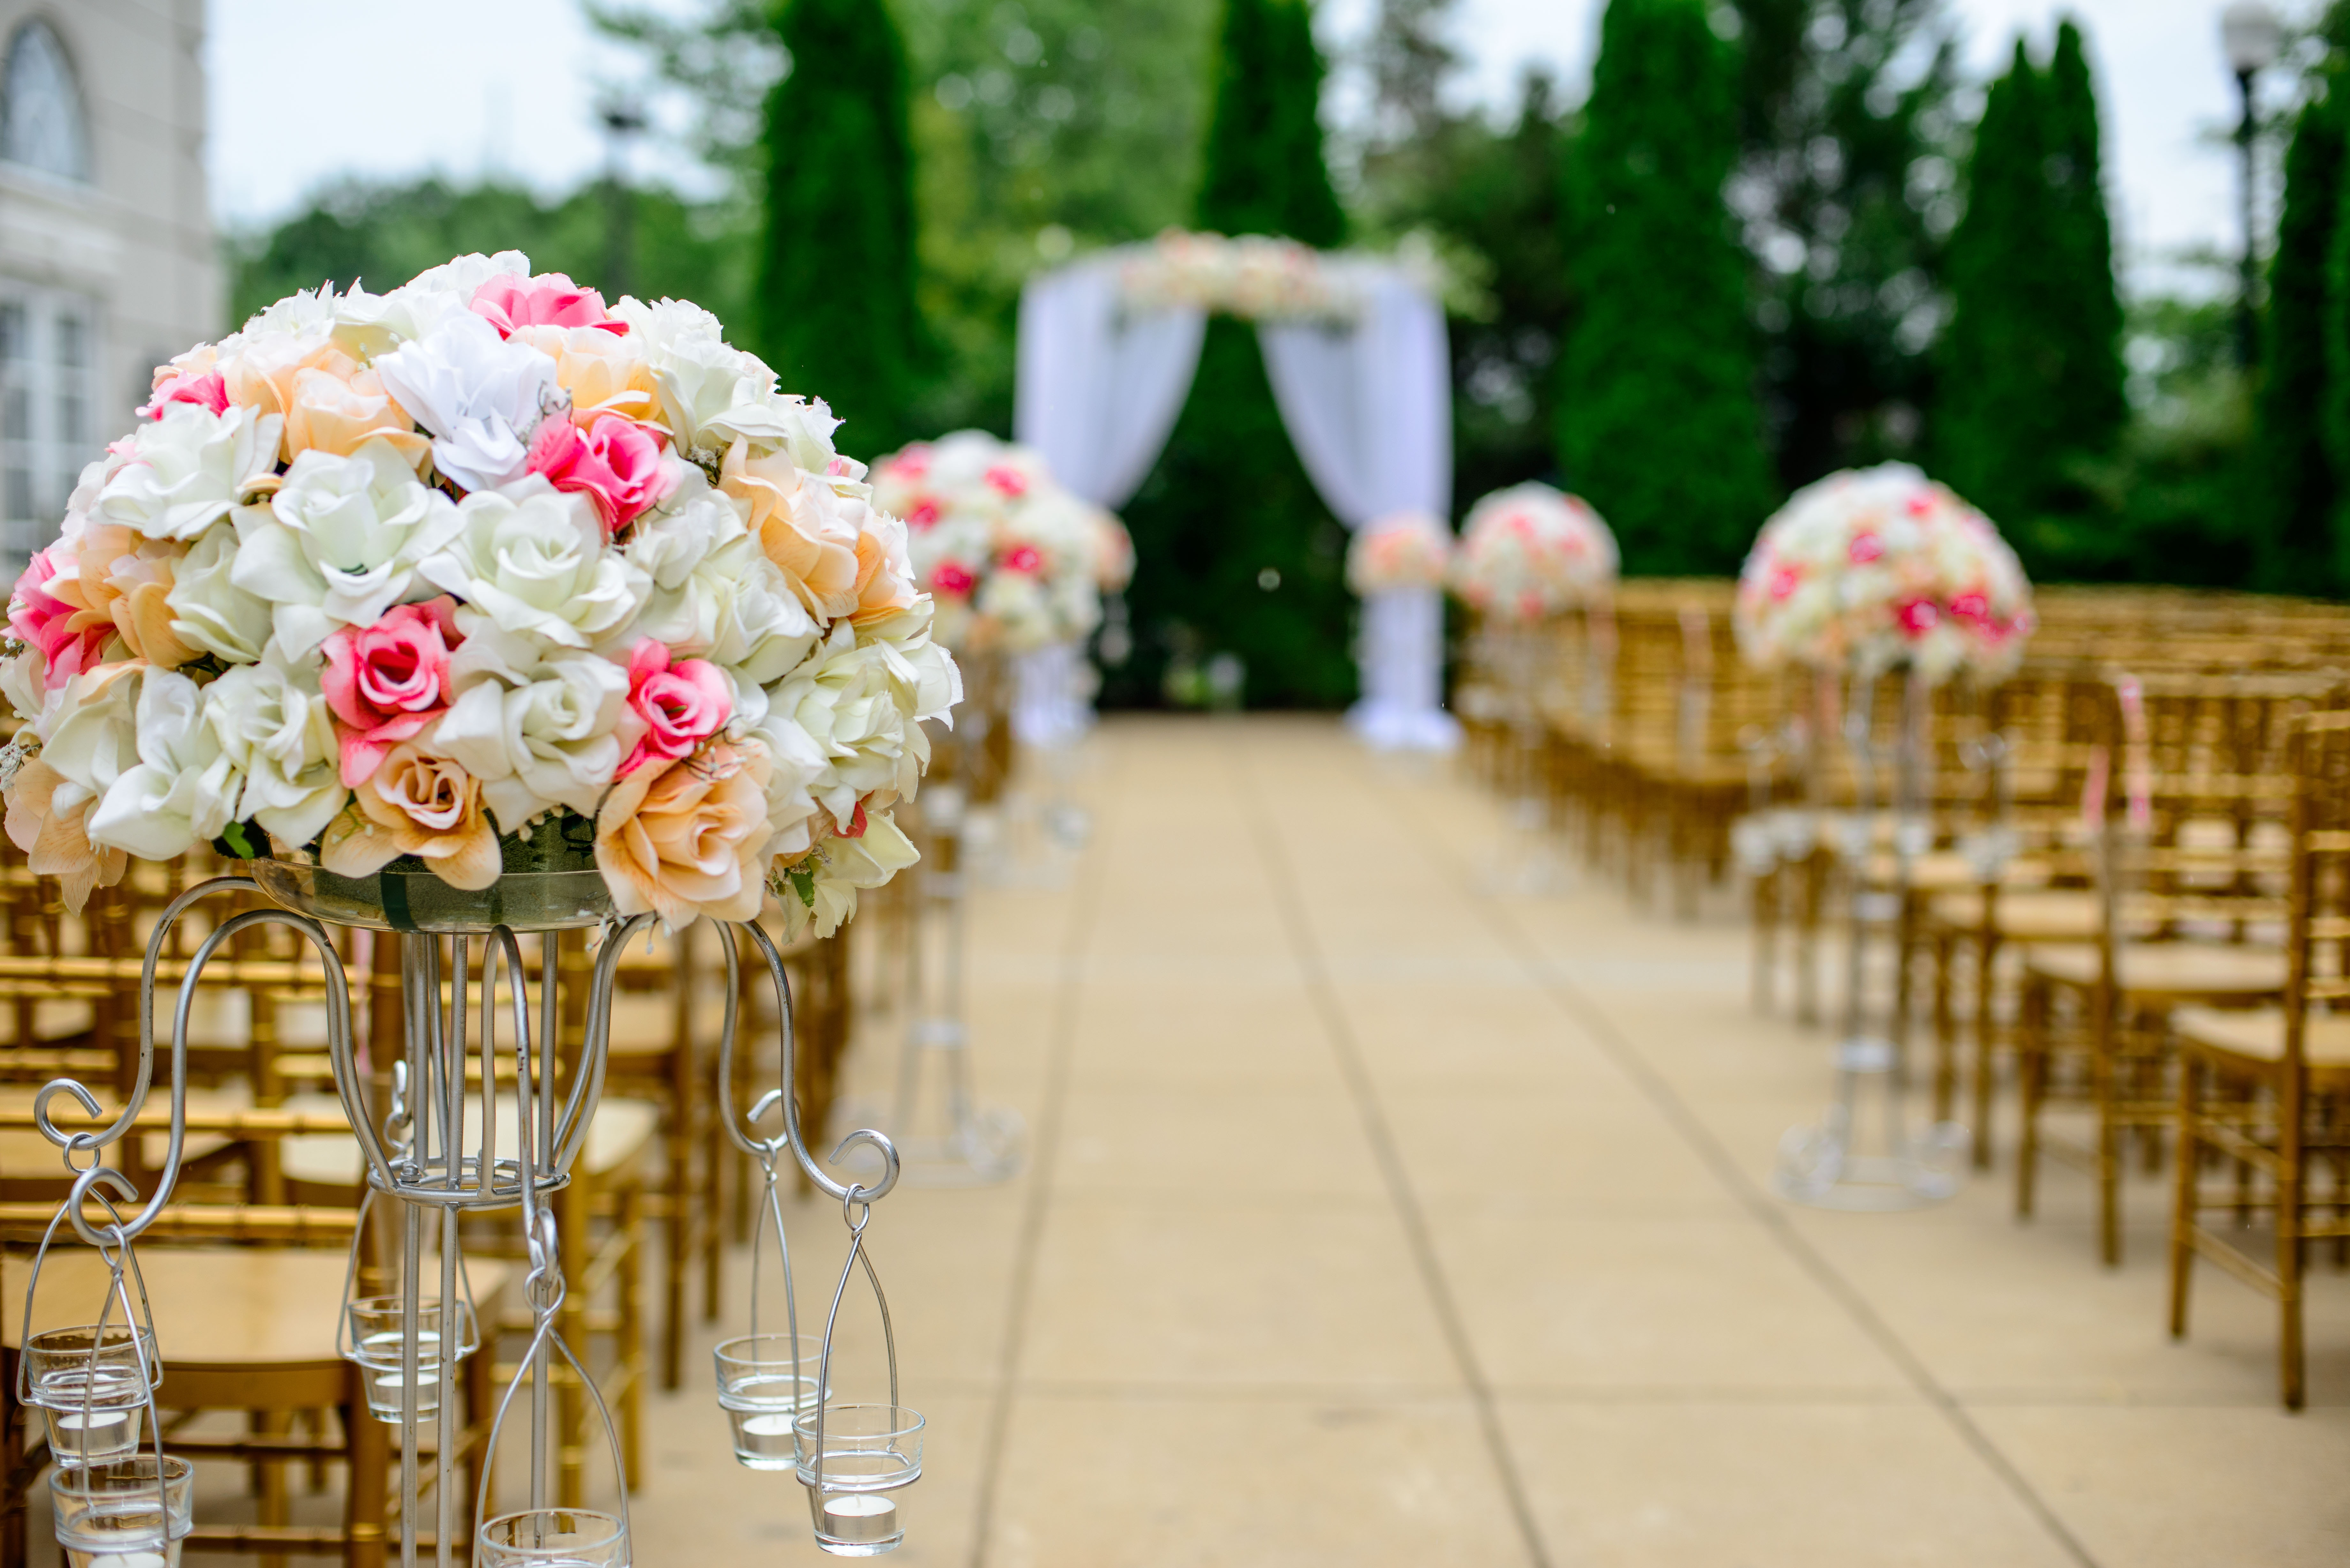 wedding decor on the aisle